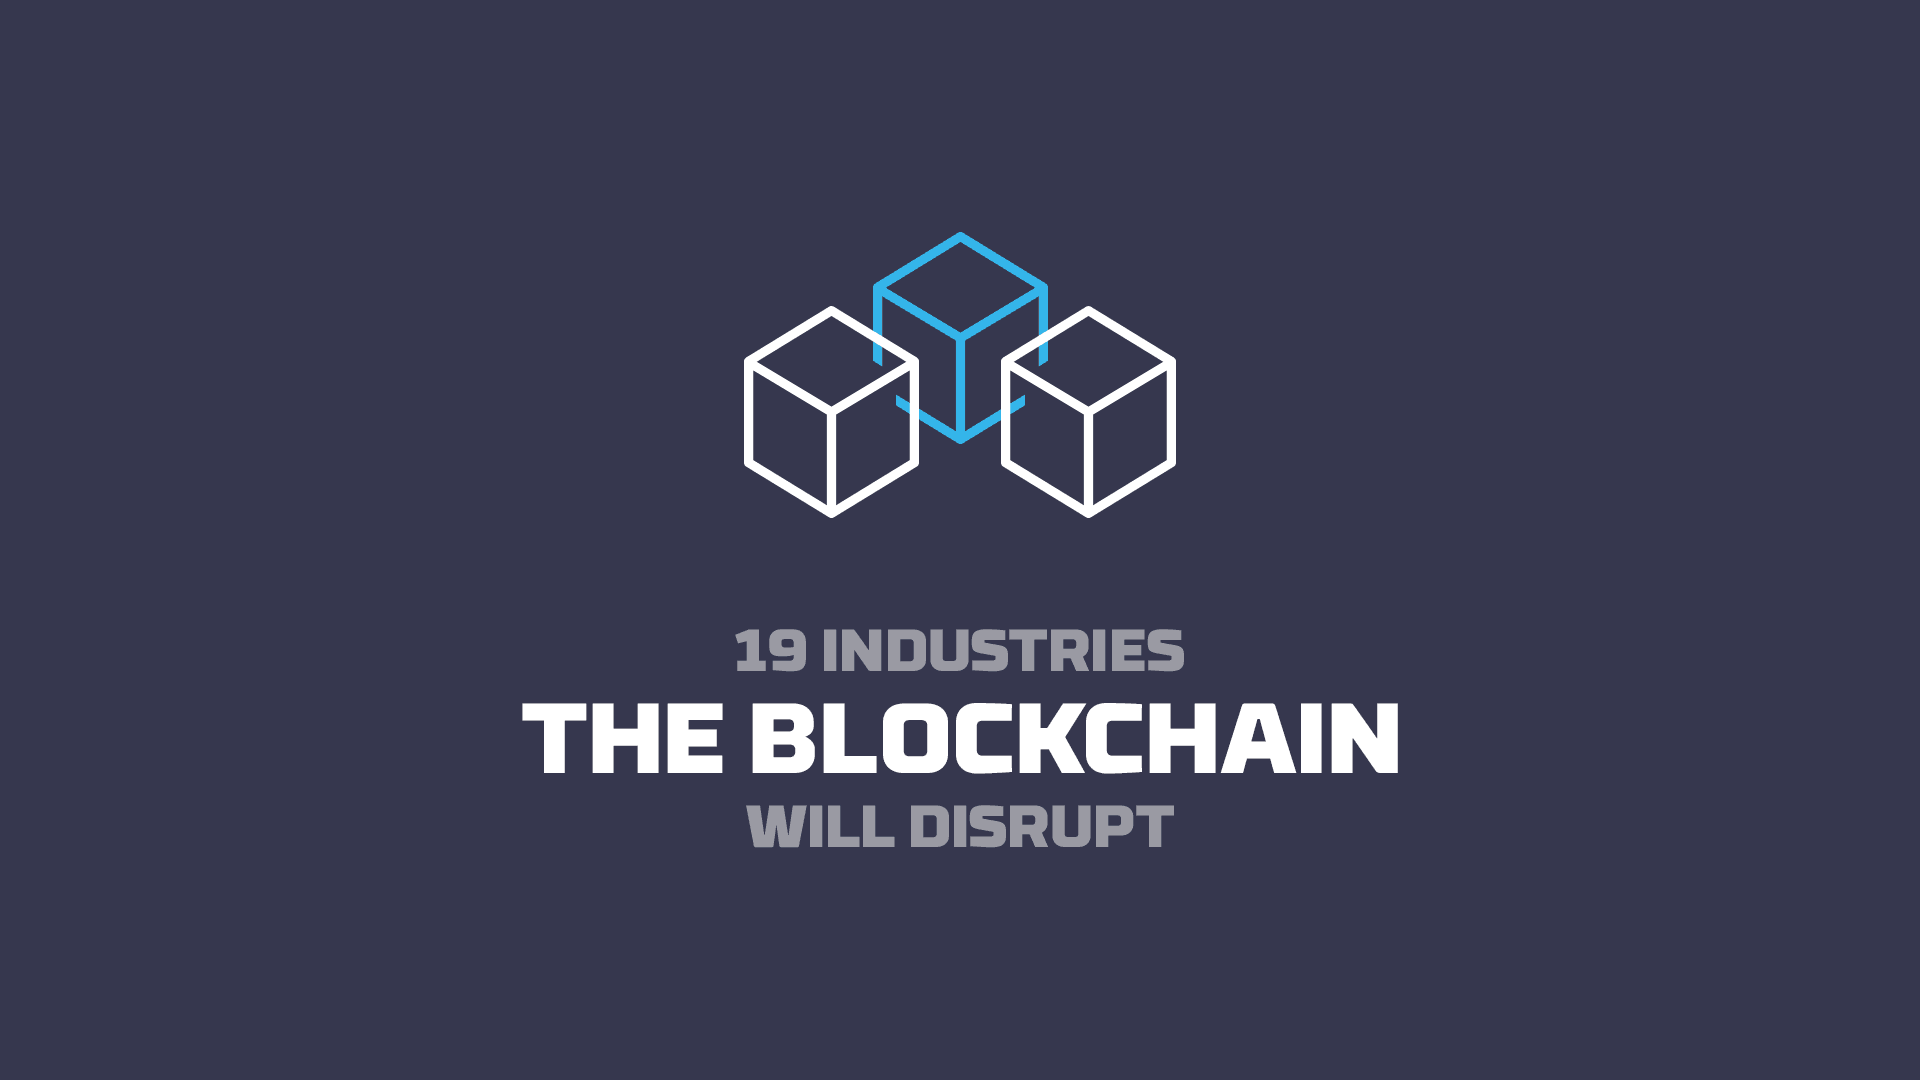 19 Industries The Blockchain Technology Will Disrupt